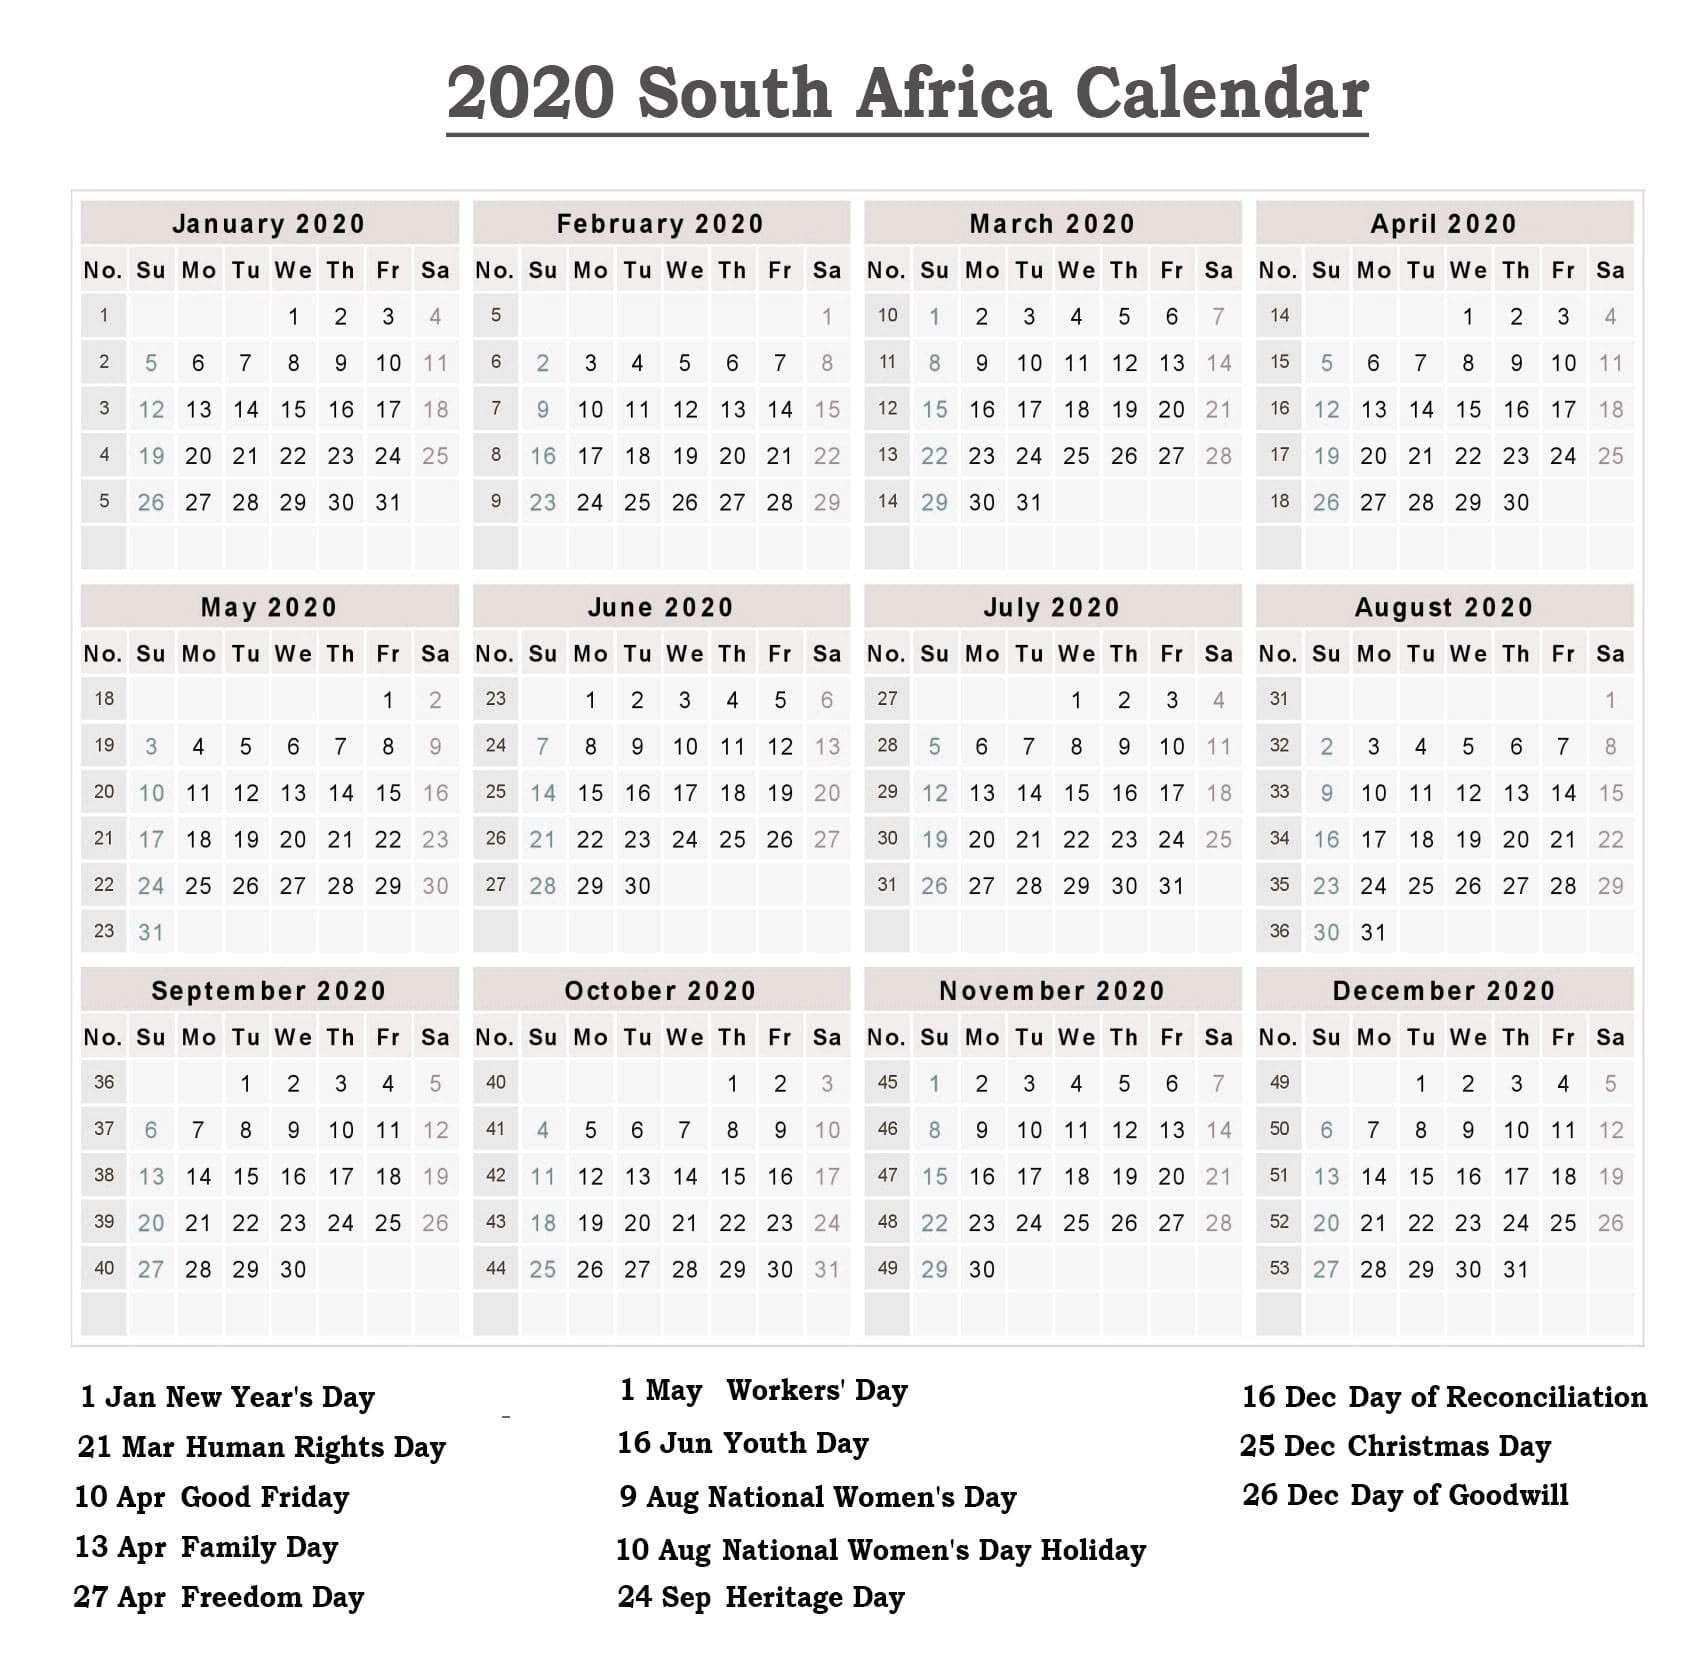 ❤️free Public Holidays Calendar 2020 South Africa-South Africa Holidays 2020